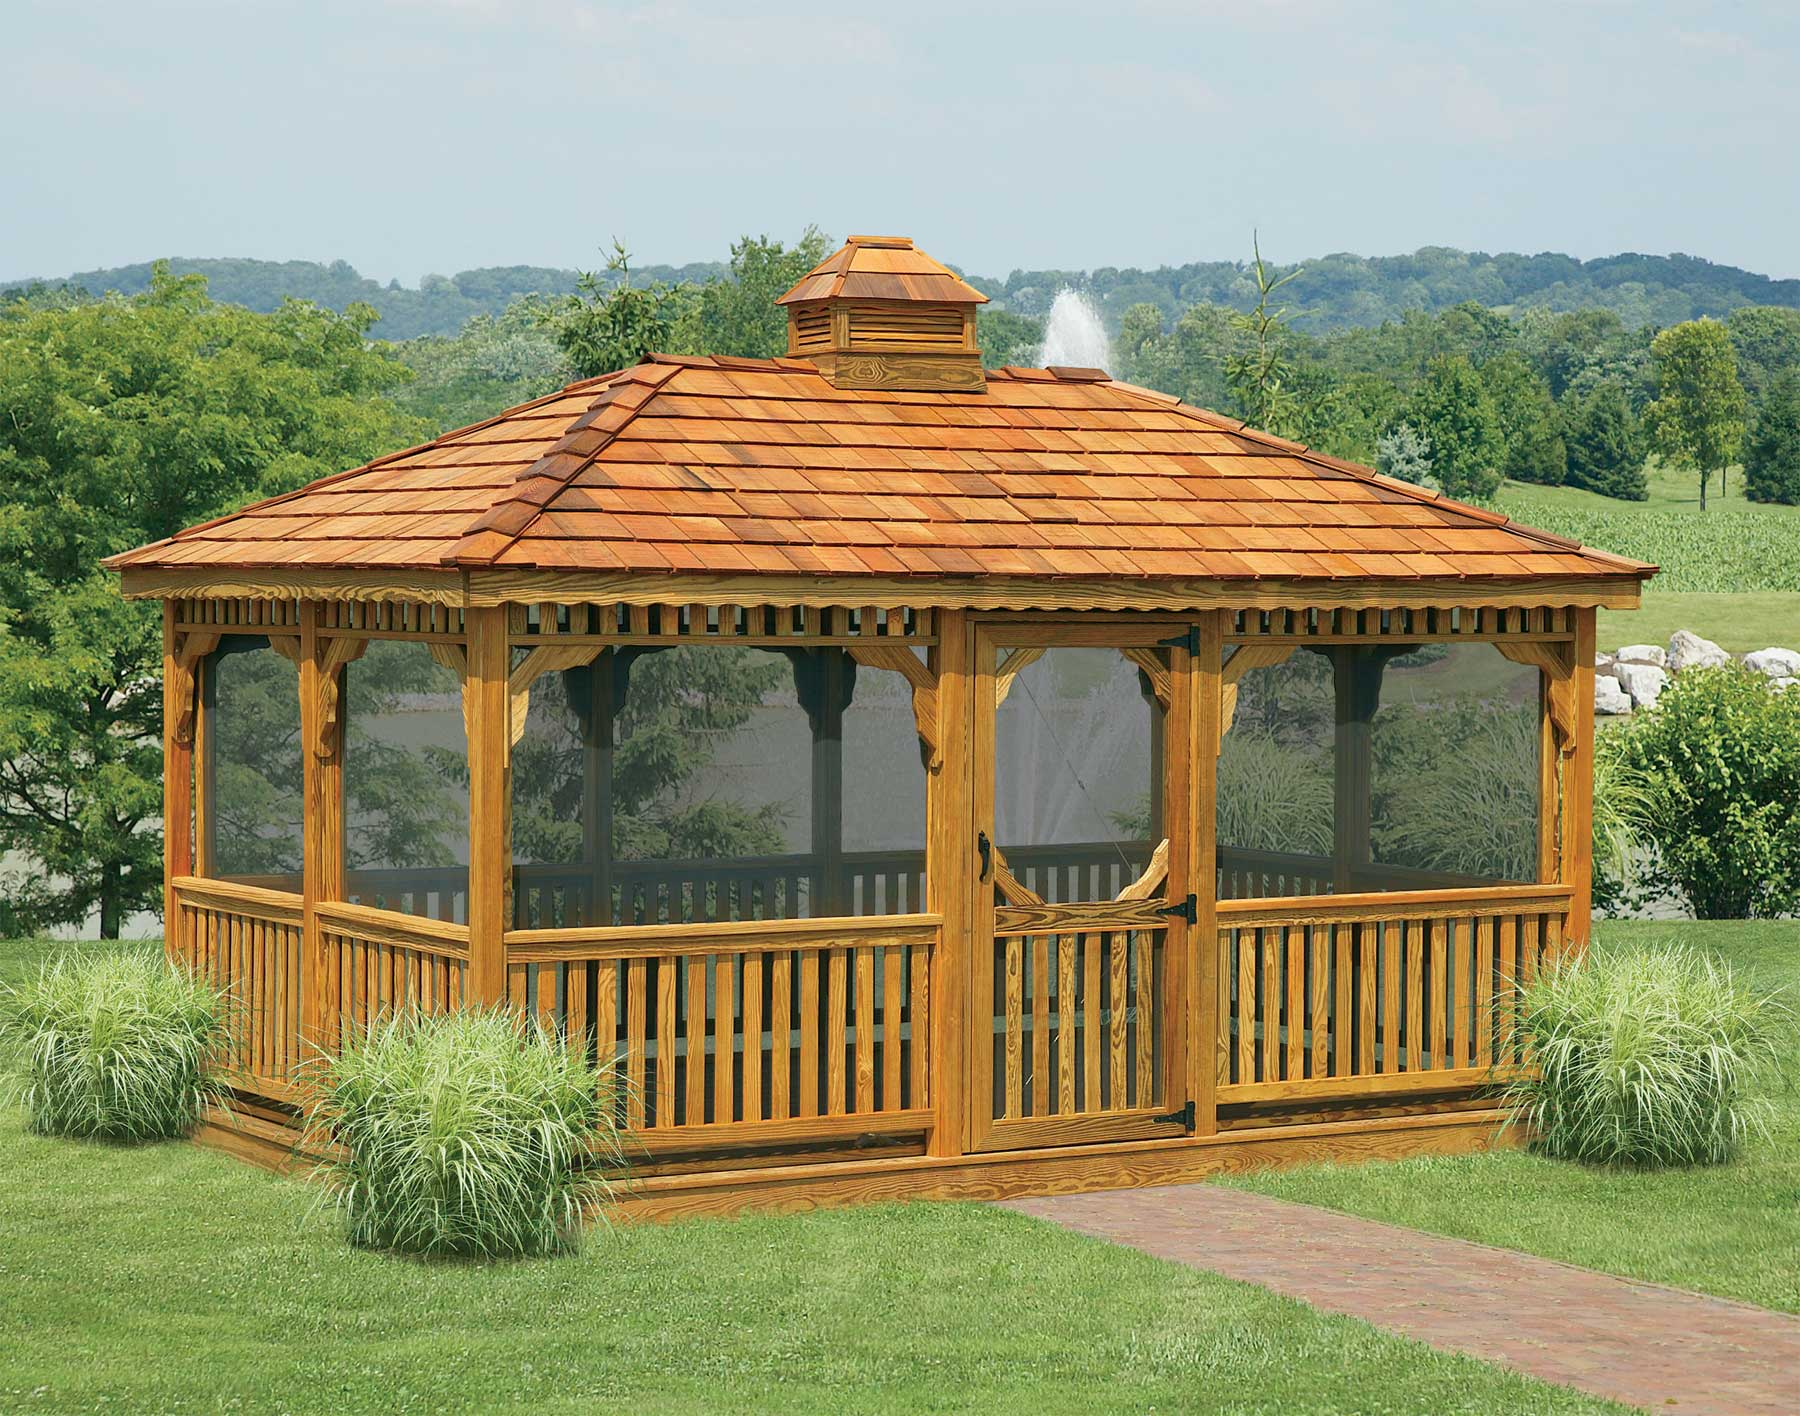 How to build a rectangular gazebo step by step guide and for Easy to build gazebo